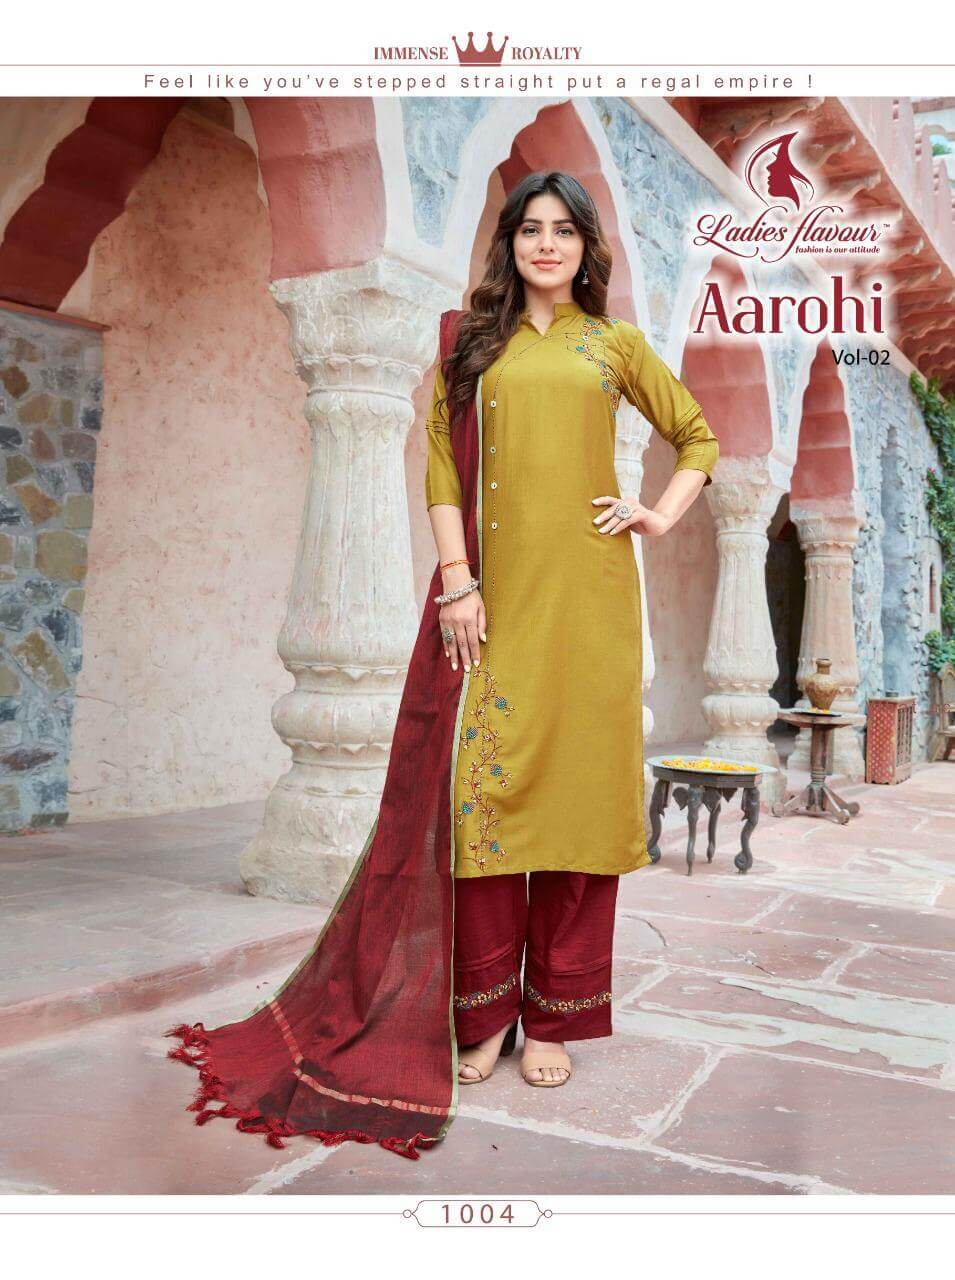 Ladies Flavour Aarohi Vol 2 collection 3